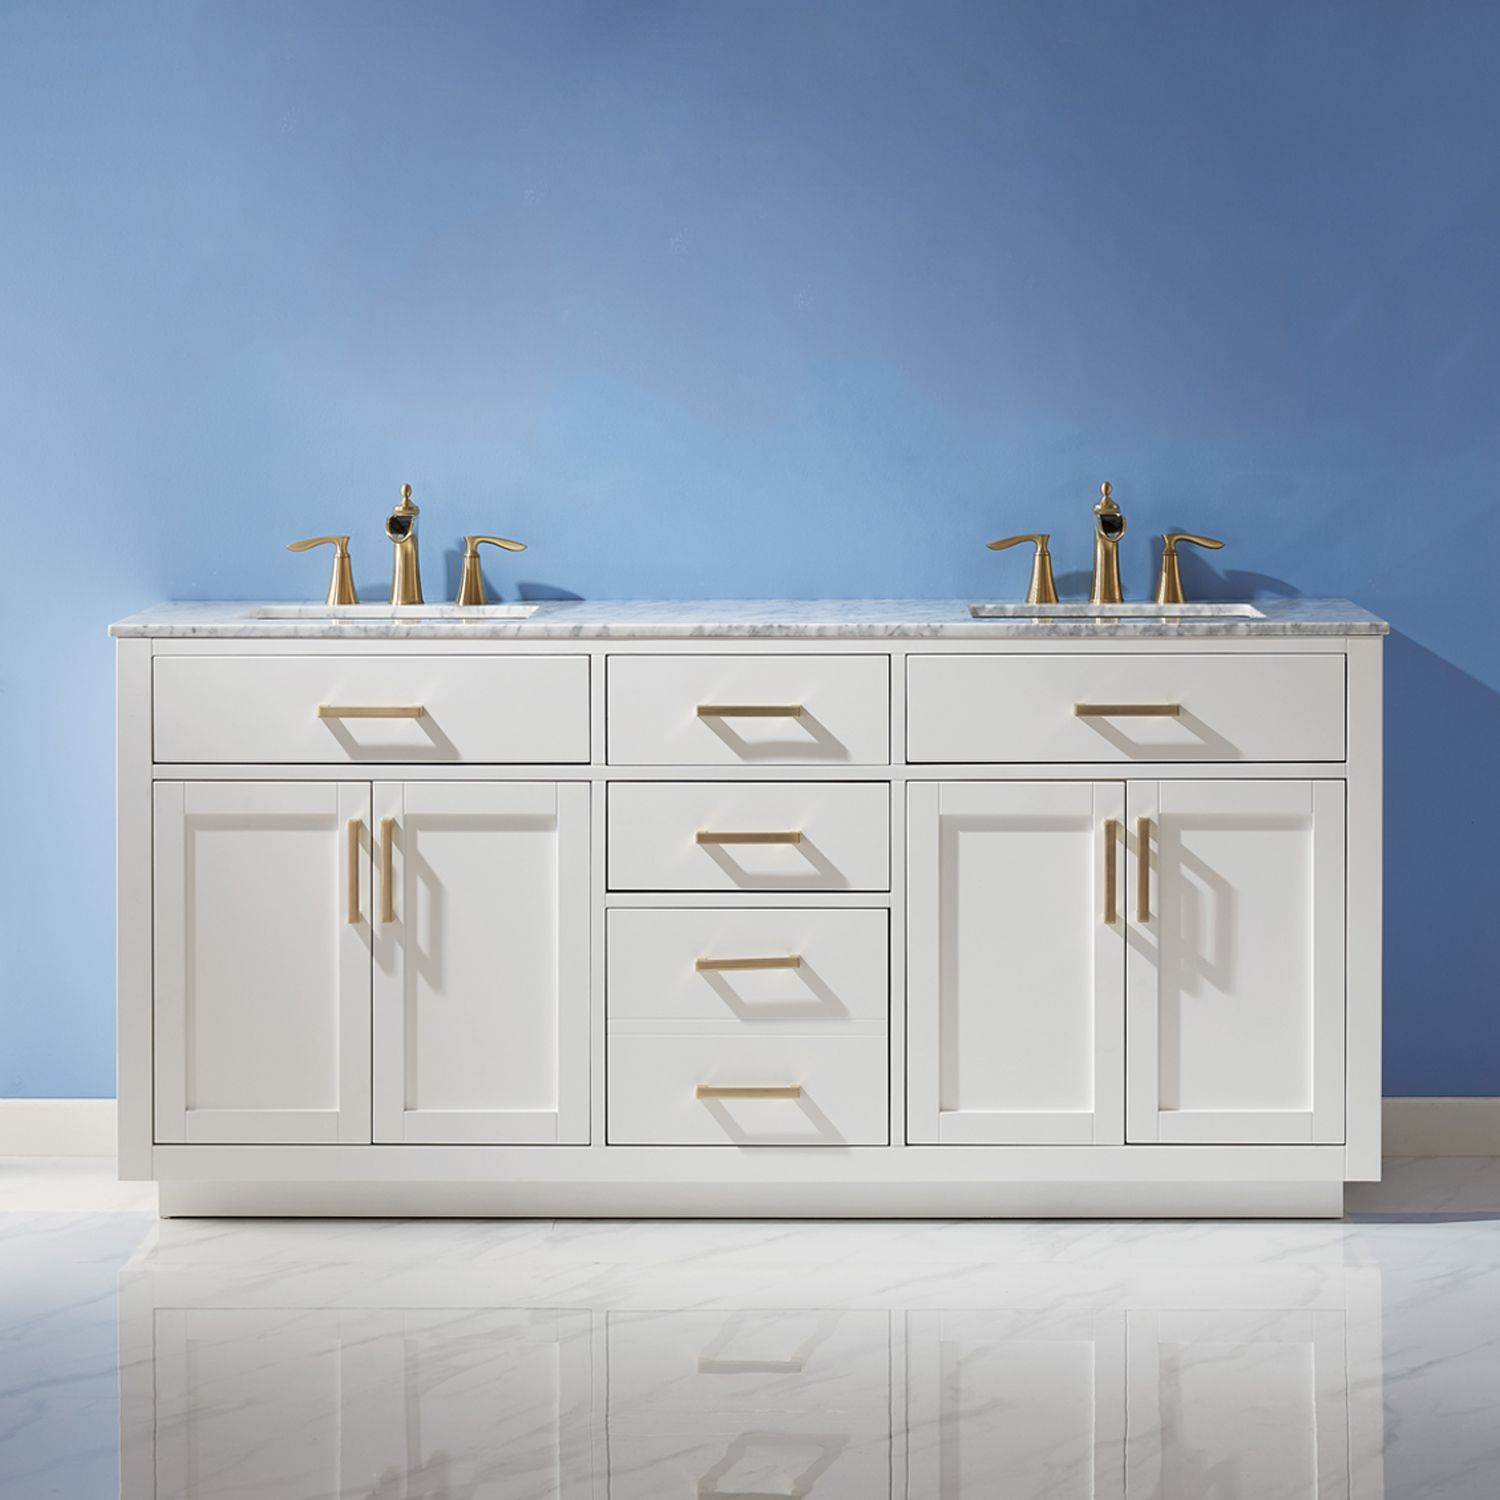 "Issac Edwards Collection 72"" Double Bathroom Vanity Set in White and Carrara White Marble Countertop without Mirror"